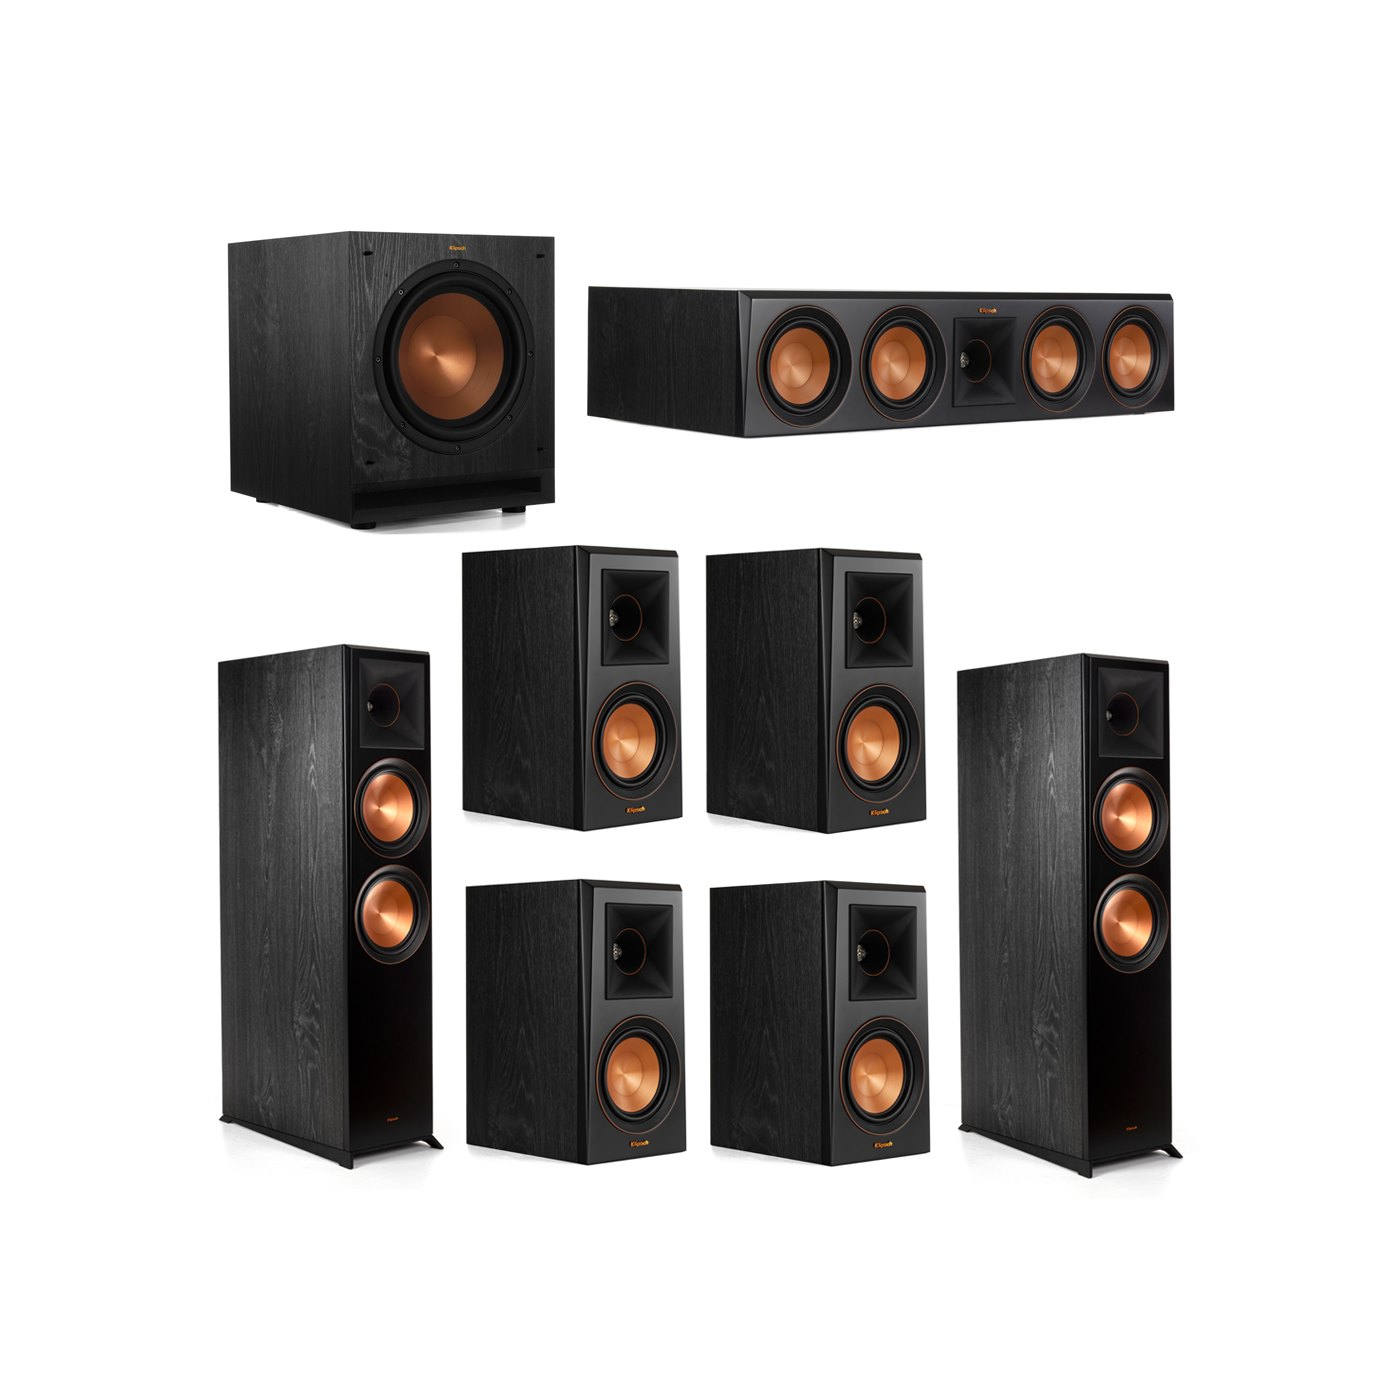 Klipsch 7.1.2 System - 2 RP-8060FA Dolby Atmos Speakers, 1 RP-504C, 4 RP-500M Speakers, 1 SPL-100